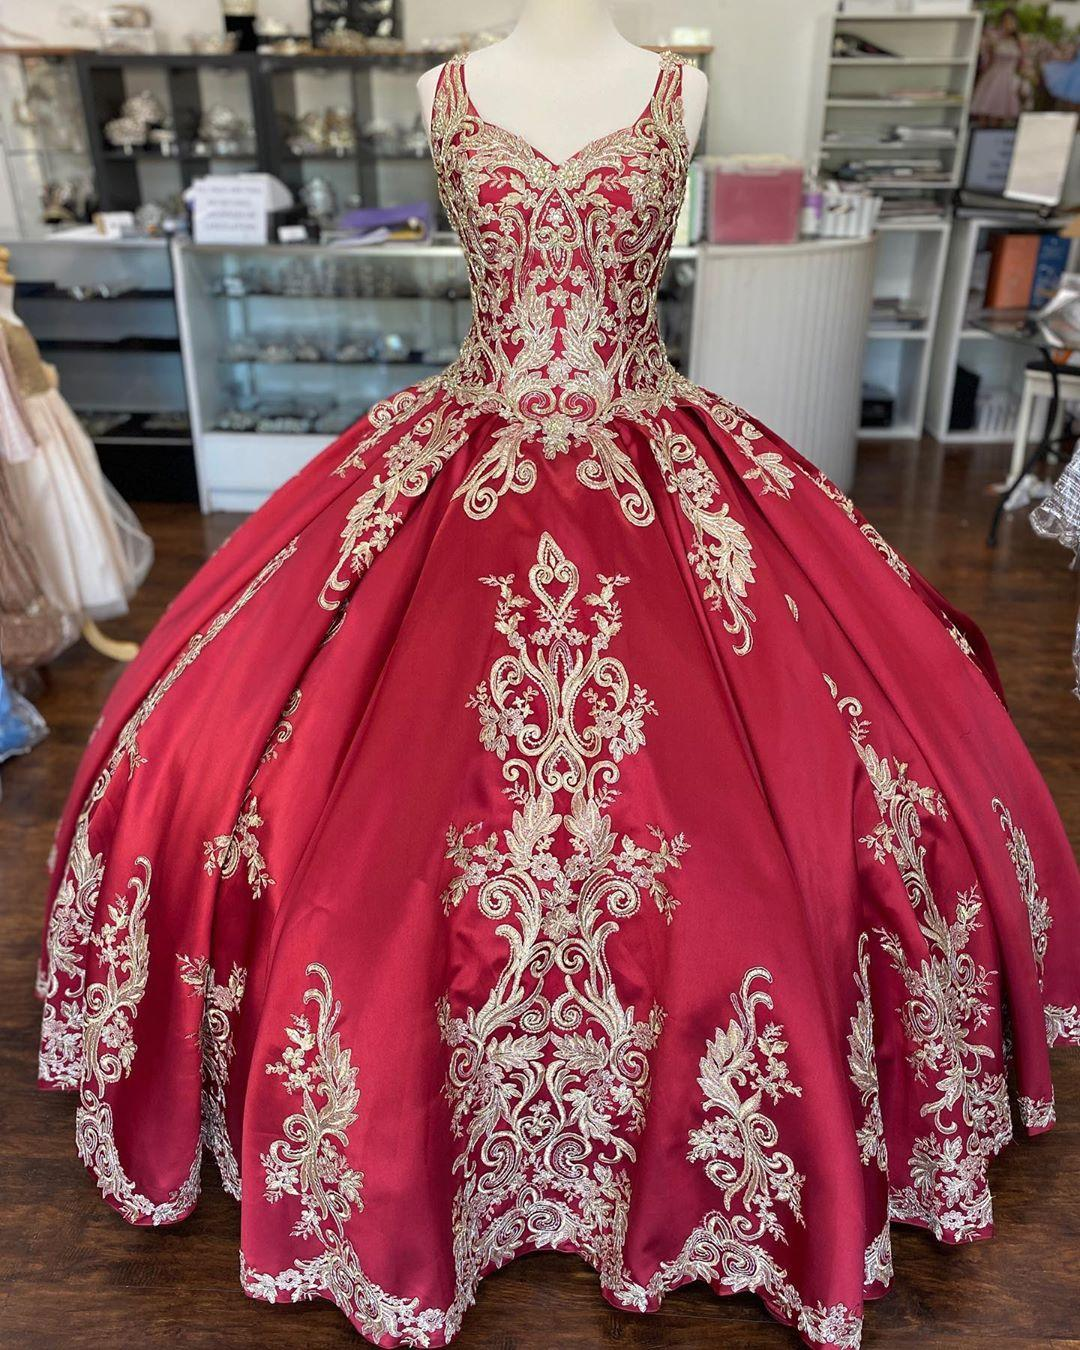 Luxury Gold Embroidery Burgundy Satin Cheap Quinceanera Prom Formal Dress Ball Gown with Straps Keyhole Back Corset Long Vestidos 15 Anos